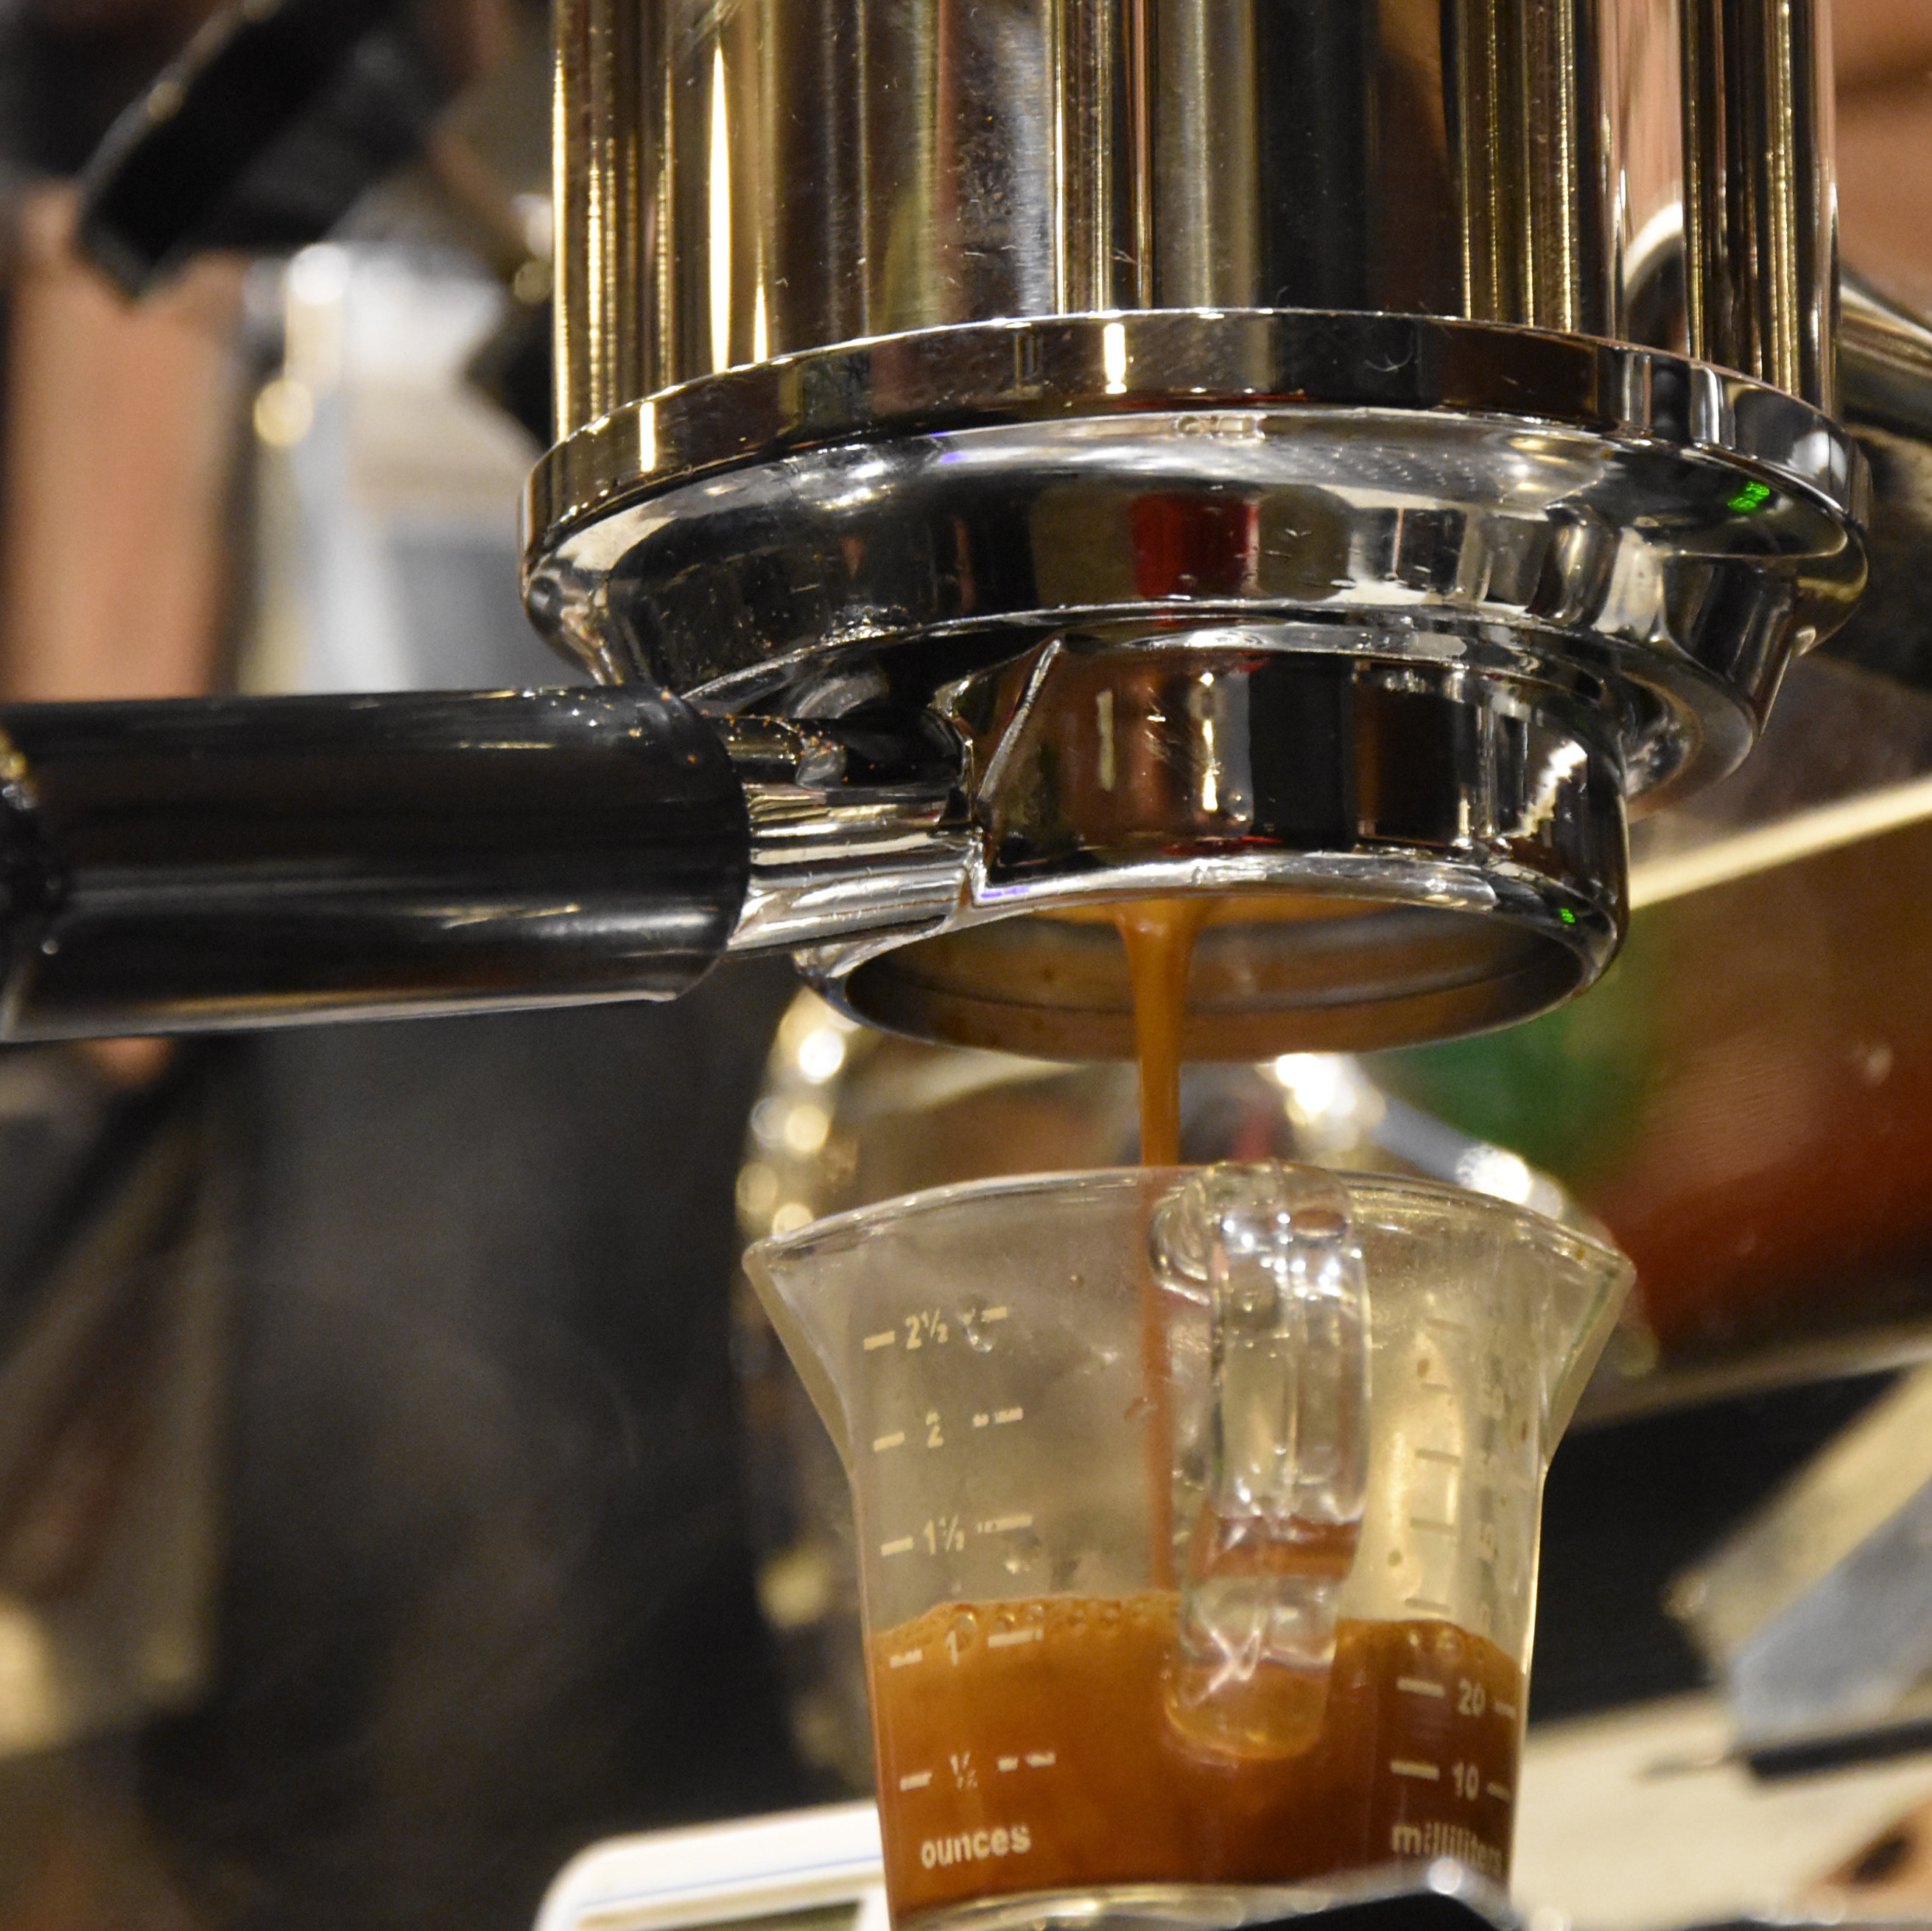 A single-origin Guatemalan coffee extracting through a bottomless portafilter on the Kees van den Westen espresso machine at Parlor Coffee in Brooklyn.